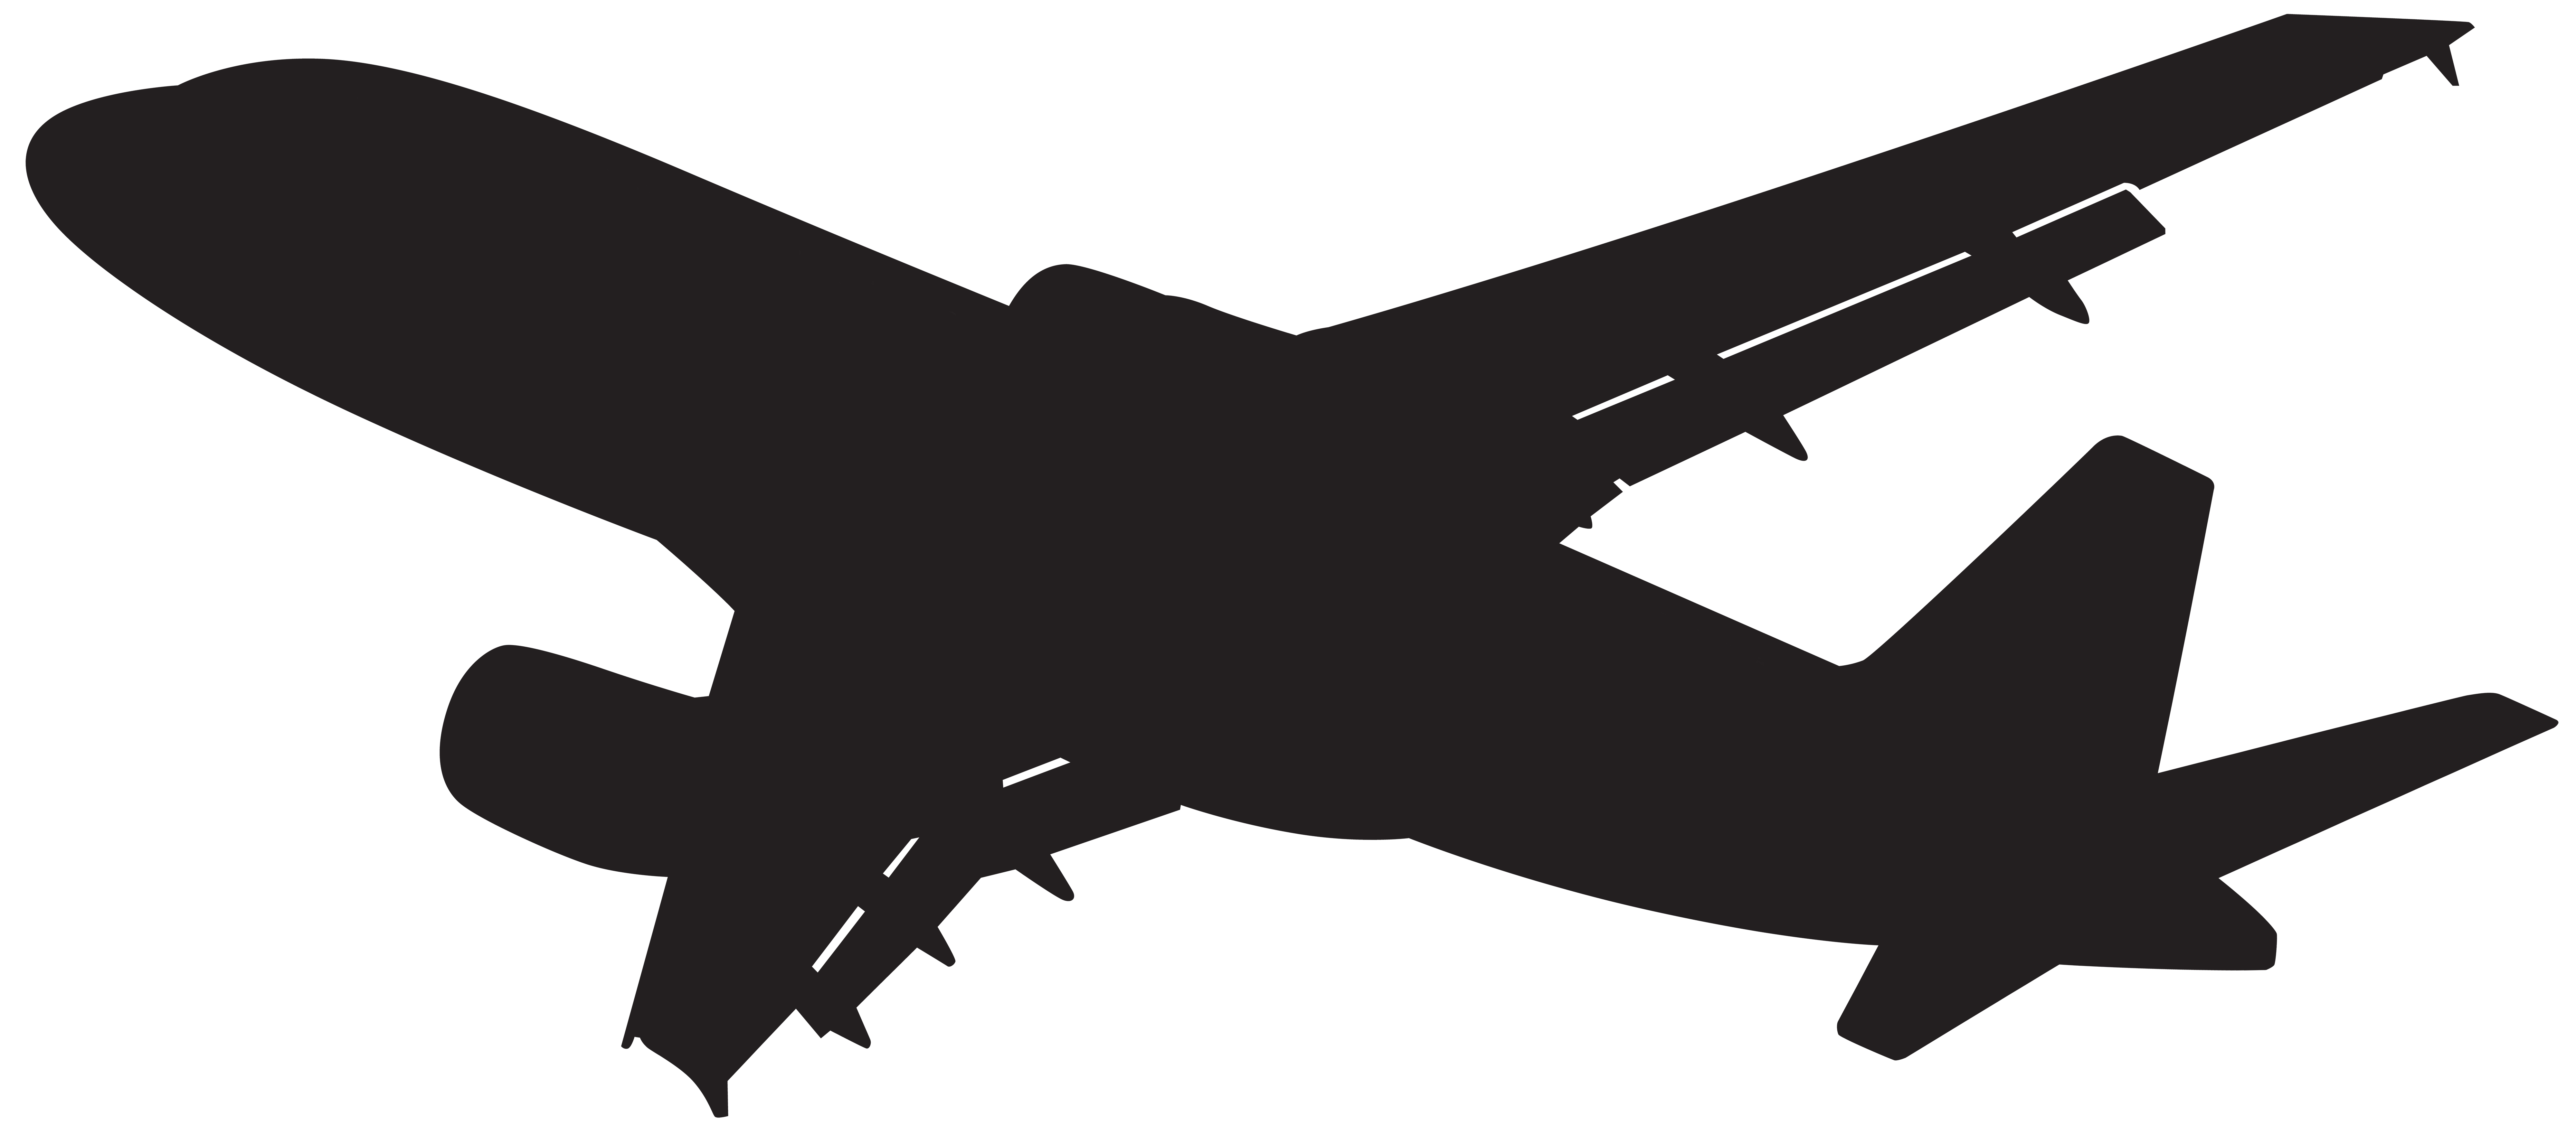 Plane silhouette png clip. White clipart airplane